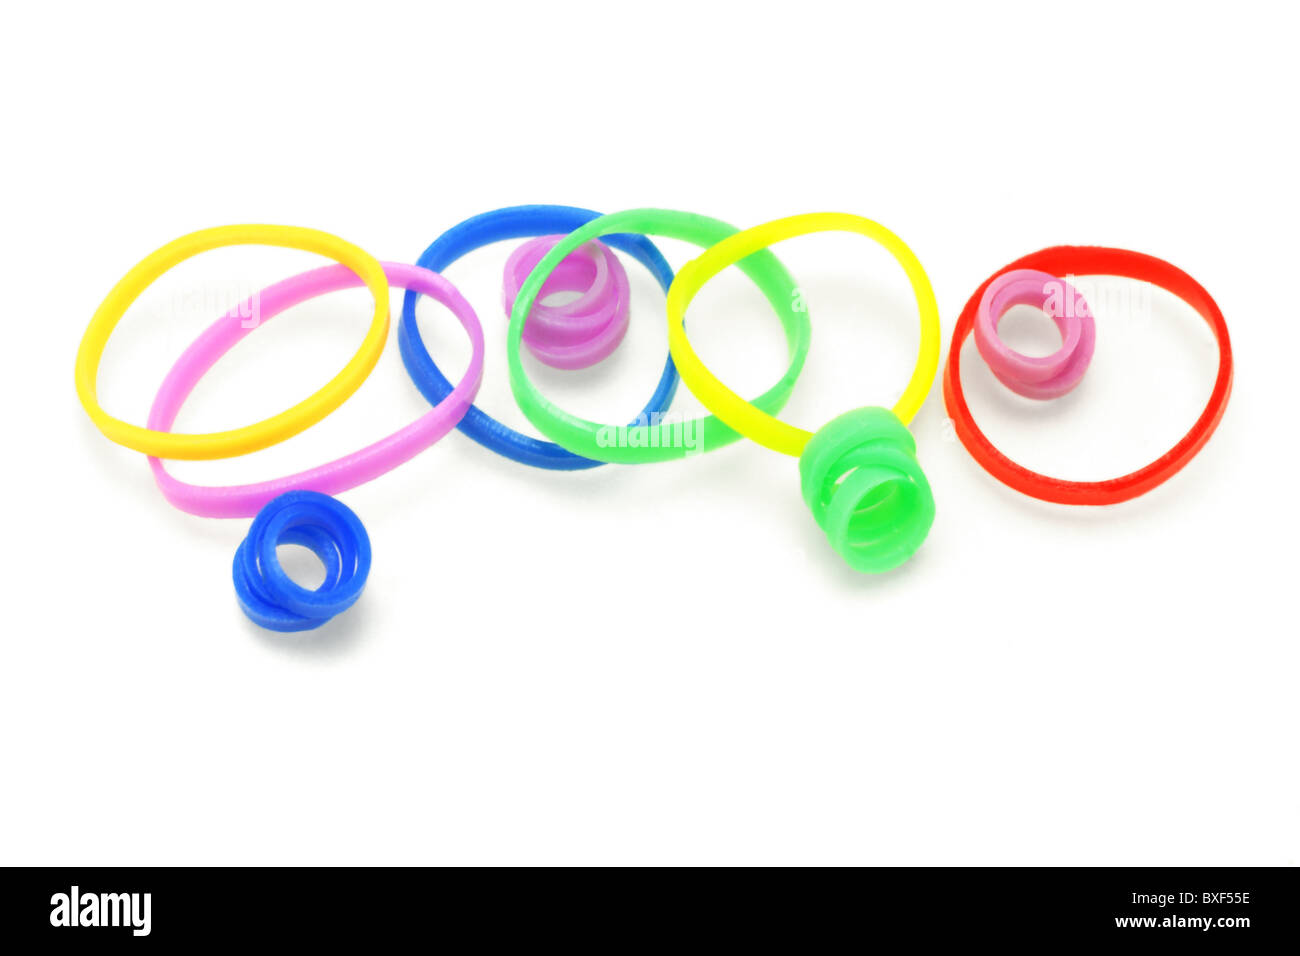 Colorful rubber bands arranged on white background - Stock Image